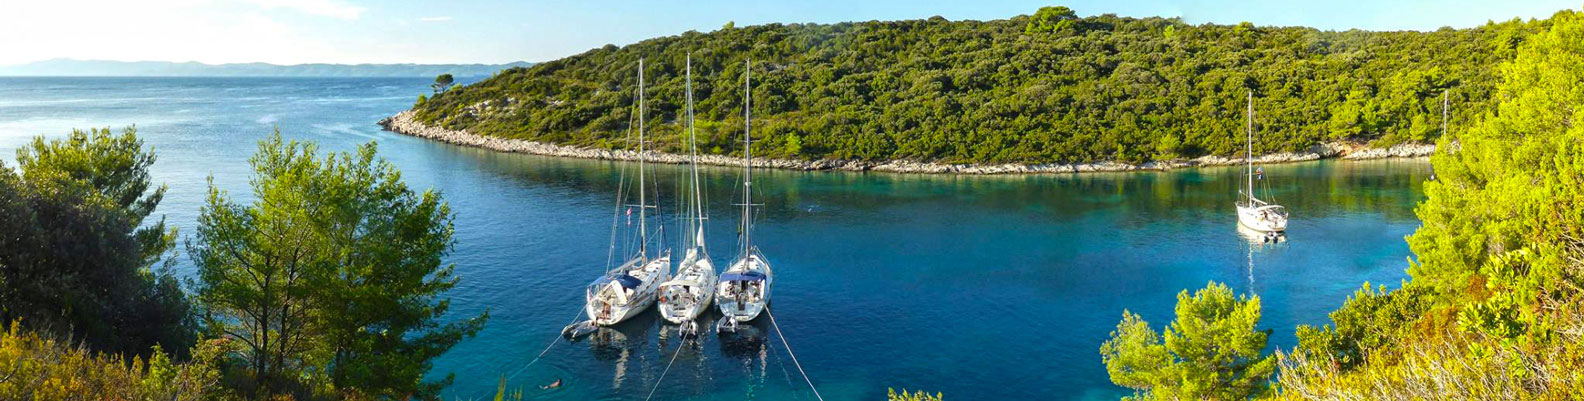 Sailing in Croatia, Turquoise bay